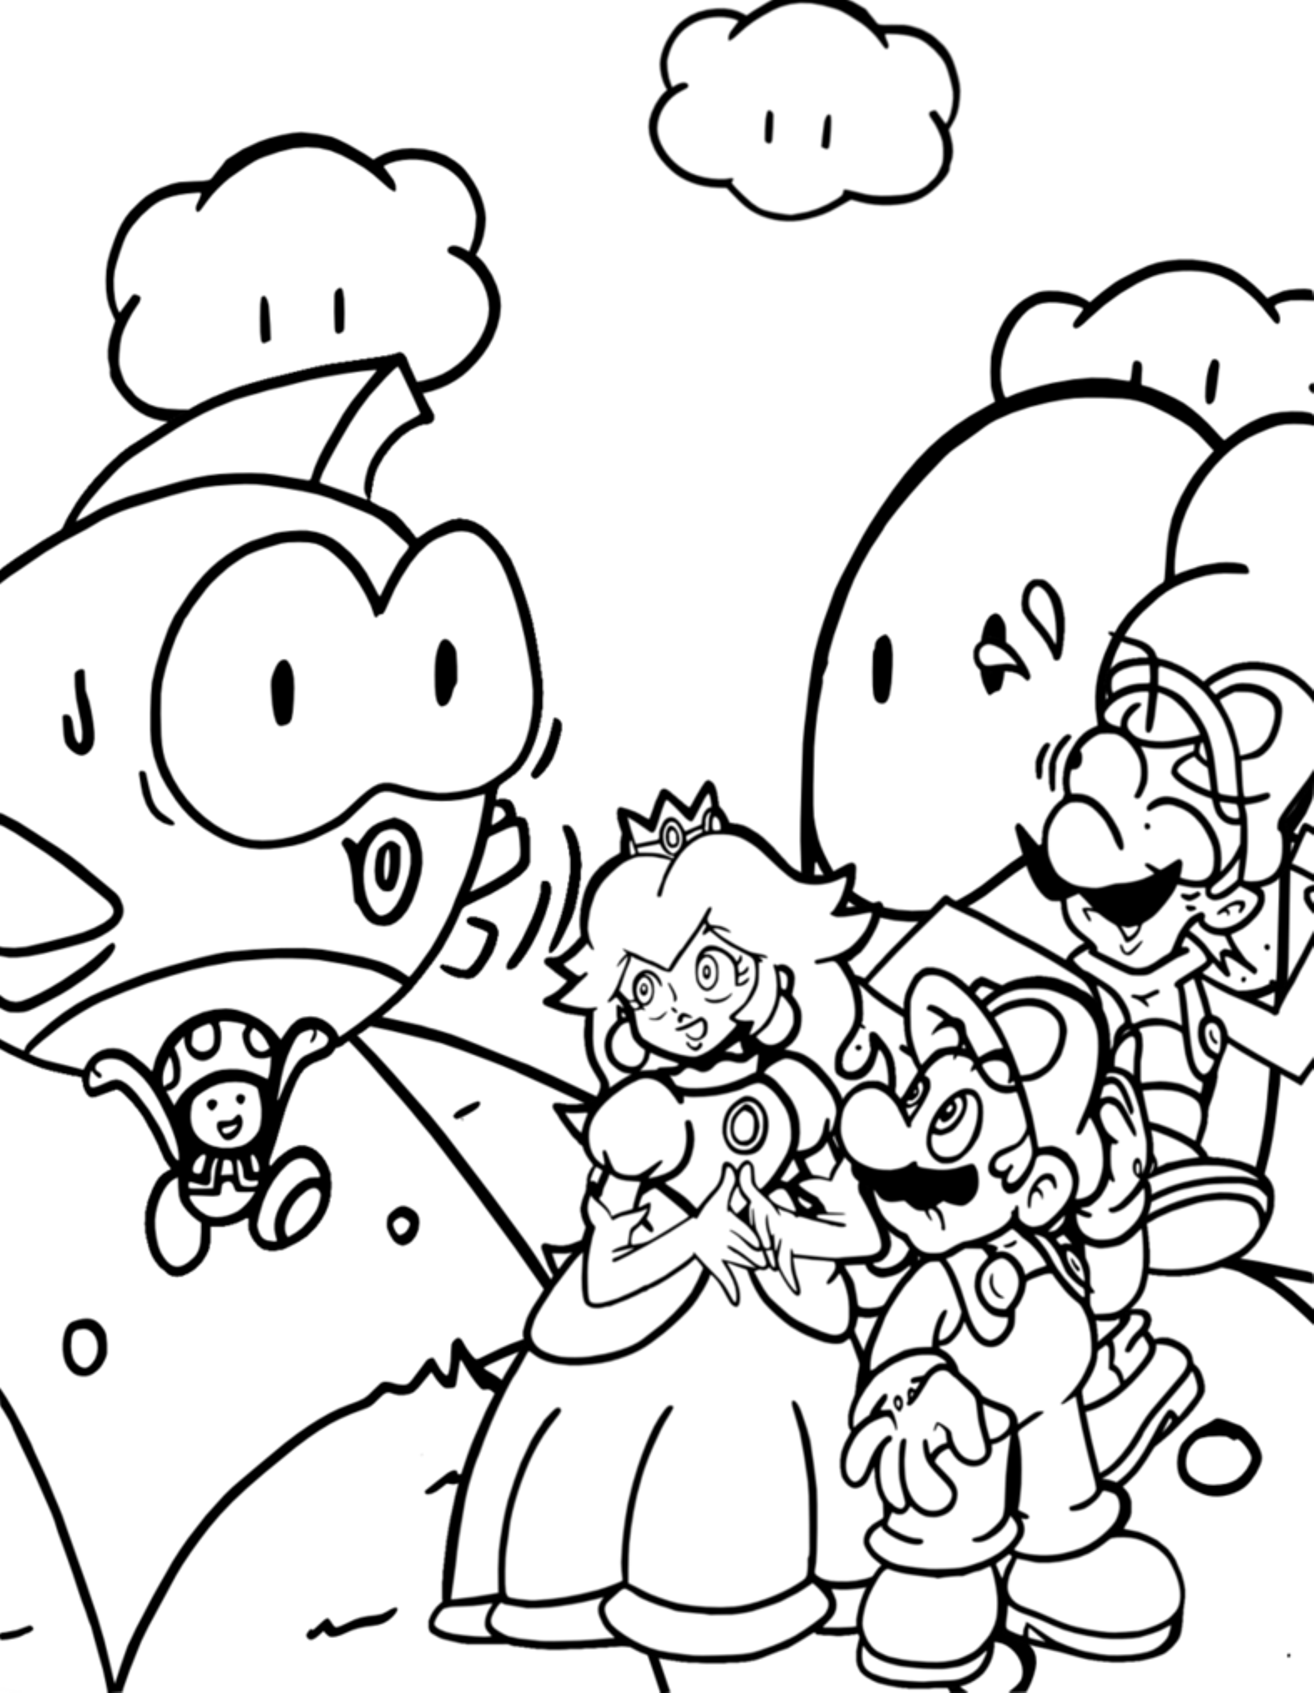 Interactive coloring pages all ages - Brothers Cartoon Coloring Pages Coloring Pages For All Ages